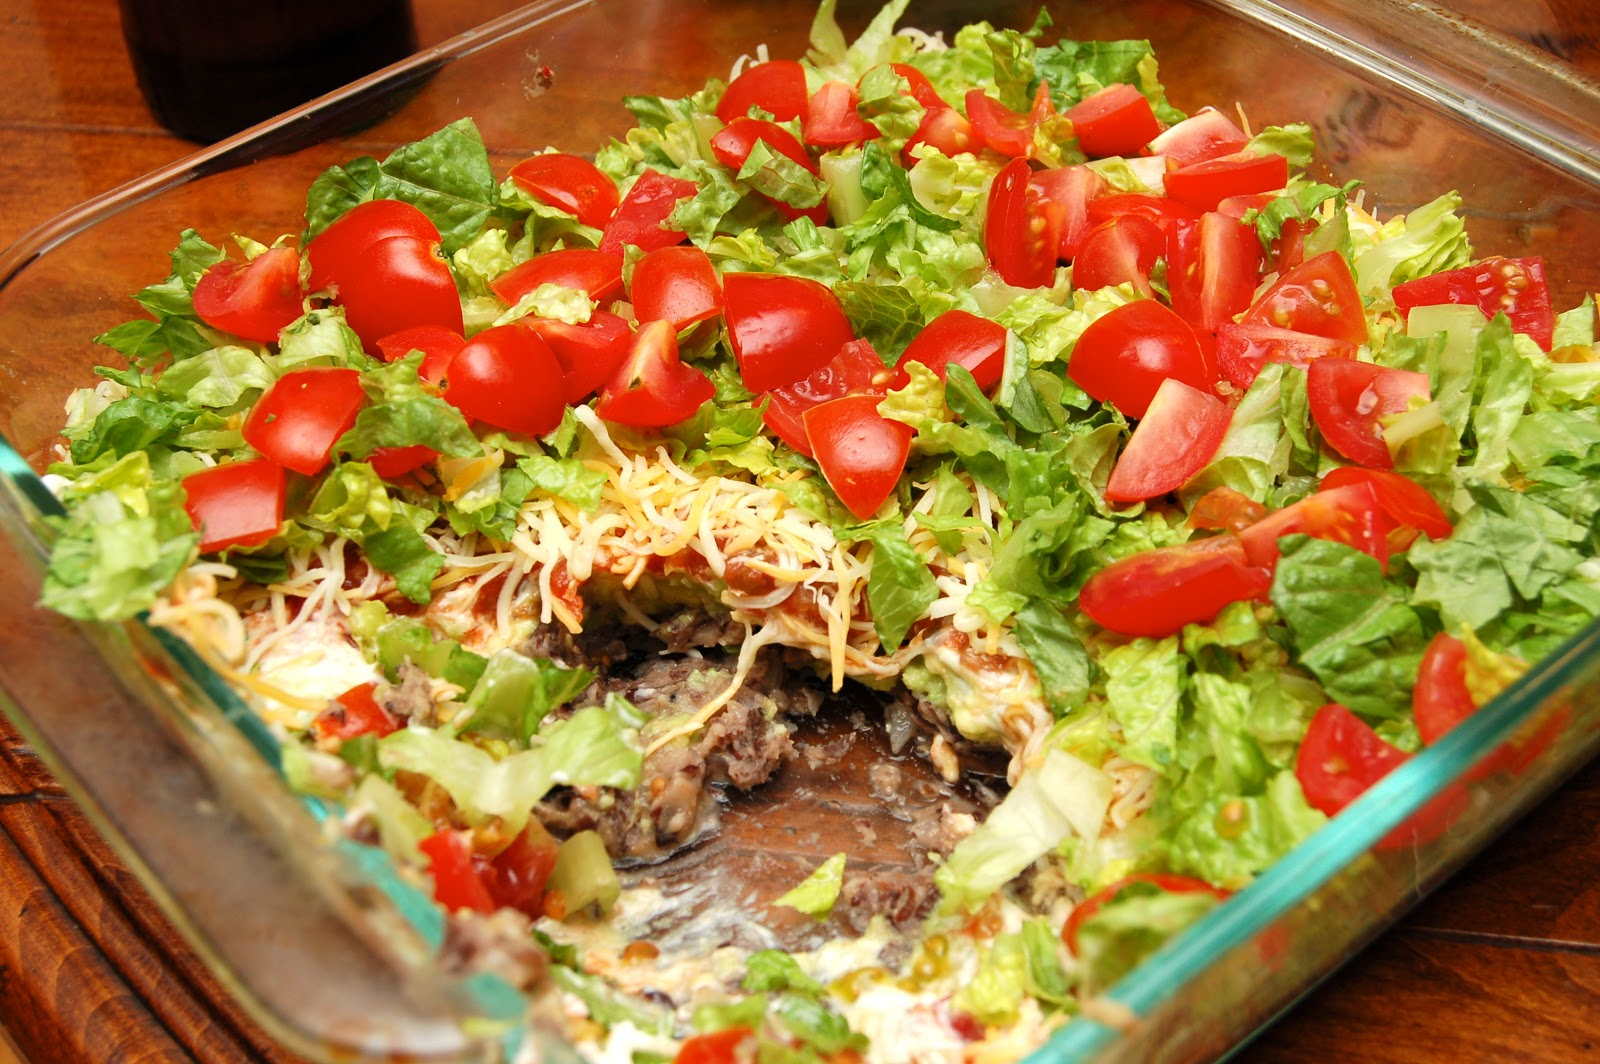 Kettler Cuisine: 7-Layer Bean Dip